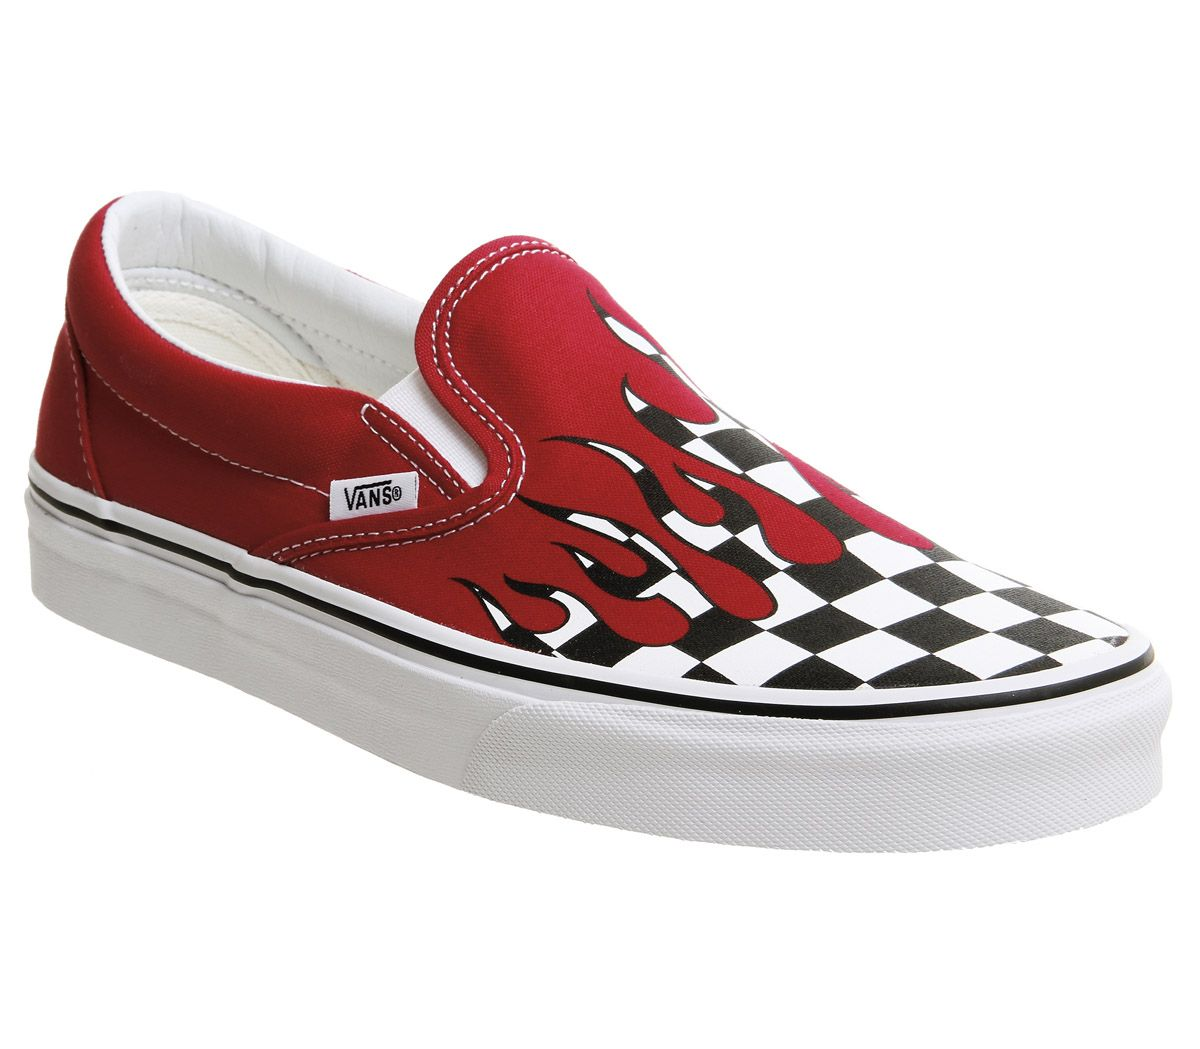 c41c73b364e Vans Vans Classic Slip On Racing Red Checkerboard Flame - Unisex Sports